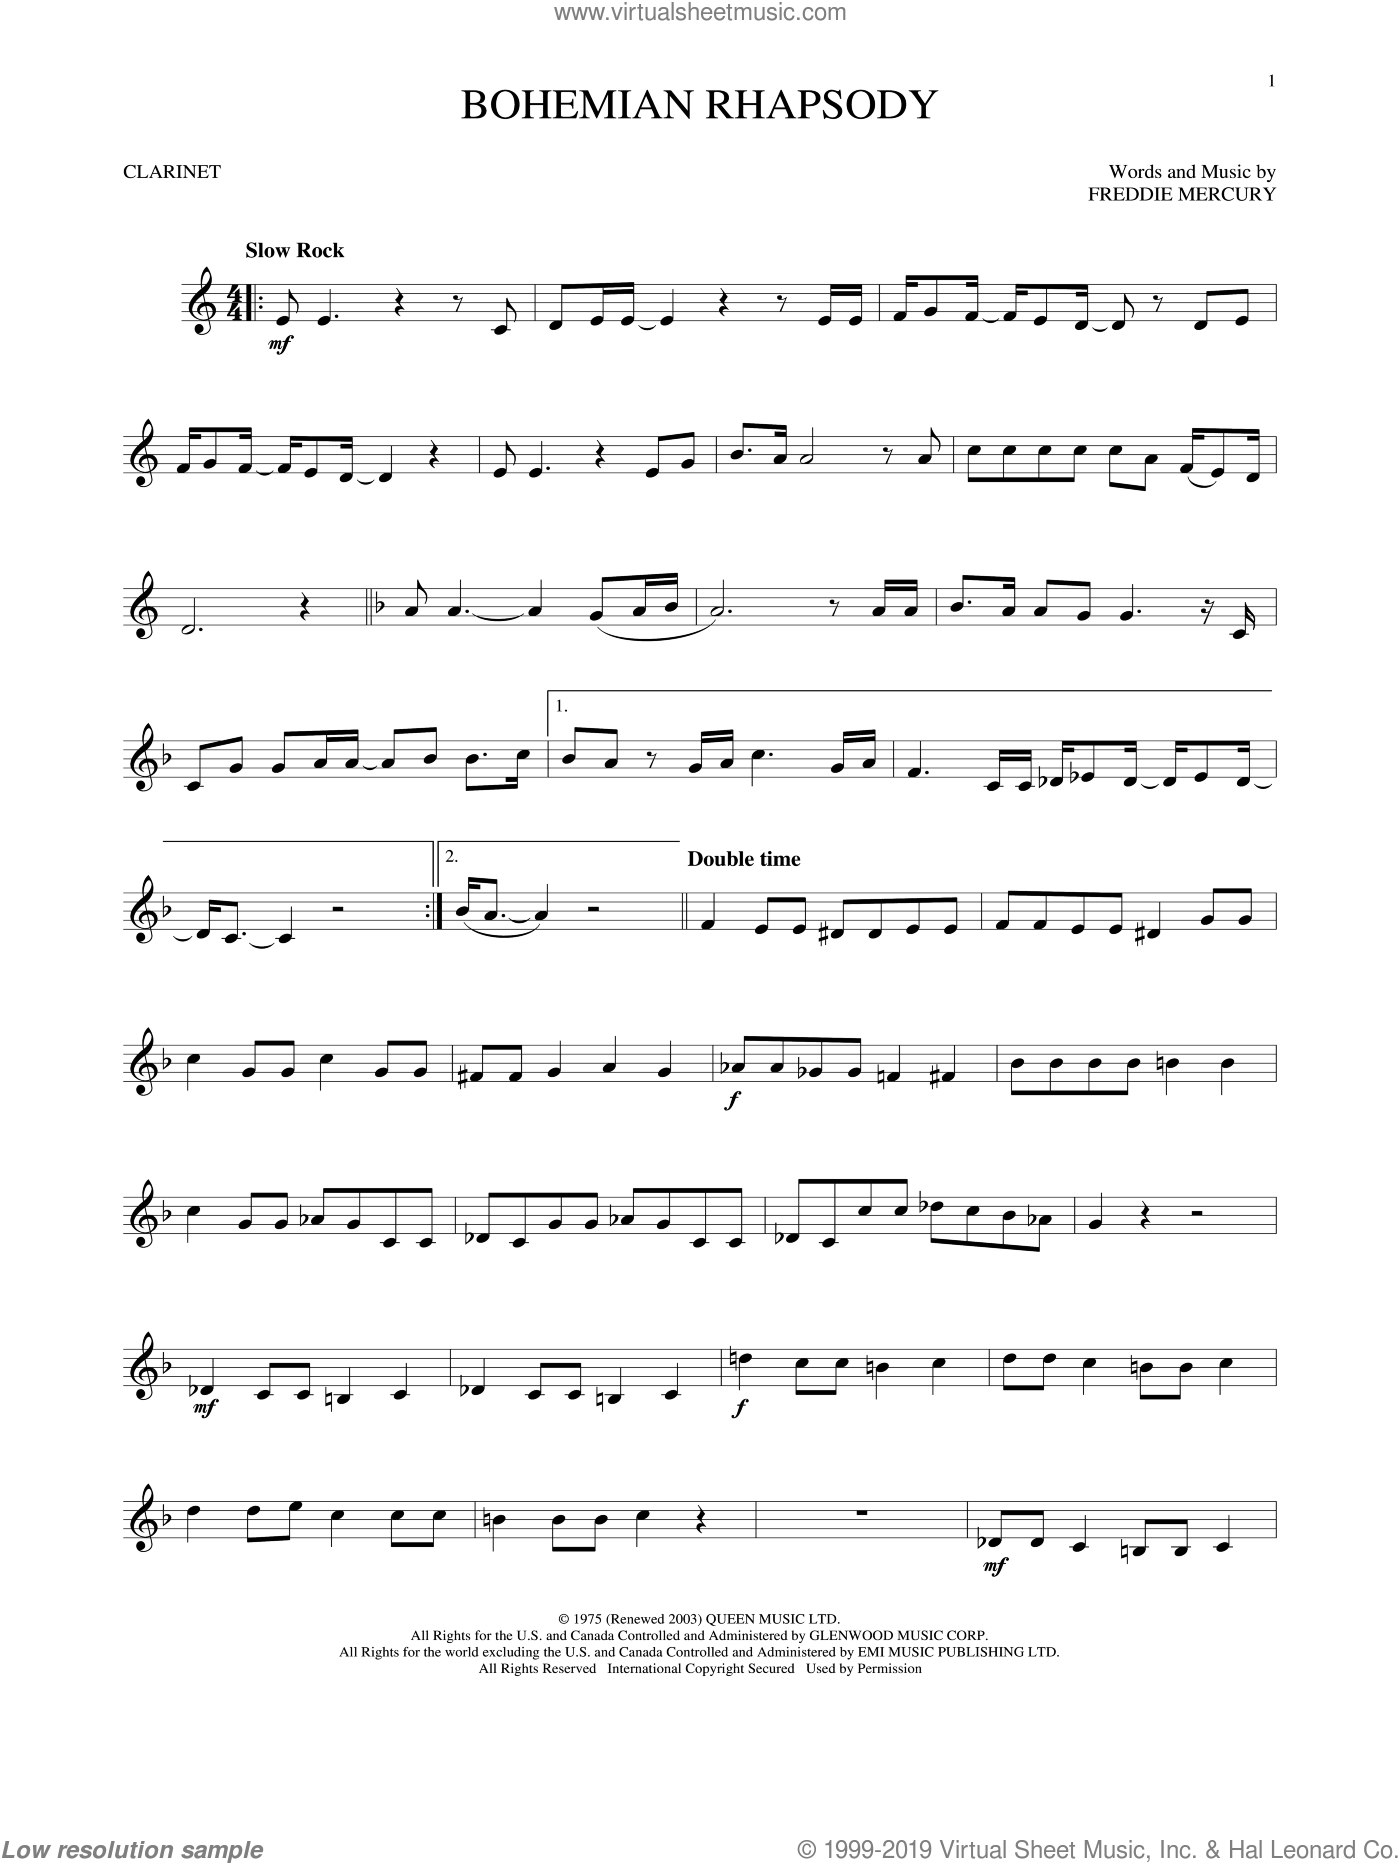 Queen - Bohemian Rhapsody sheet music for clarinet solo [PDF]